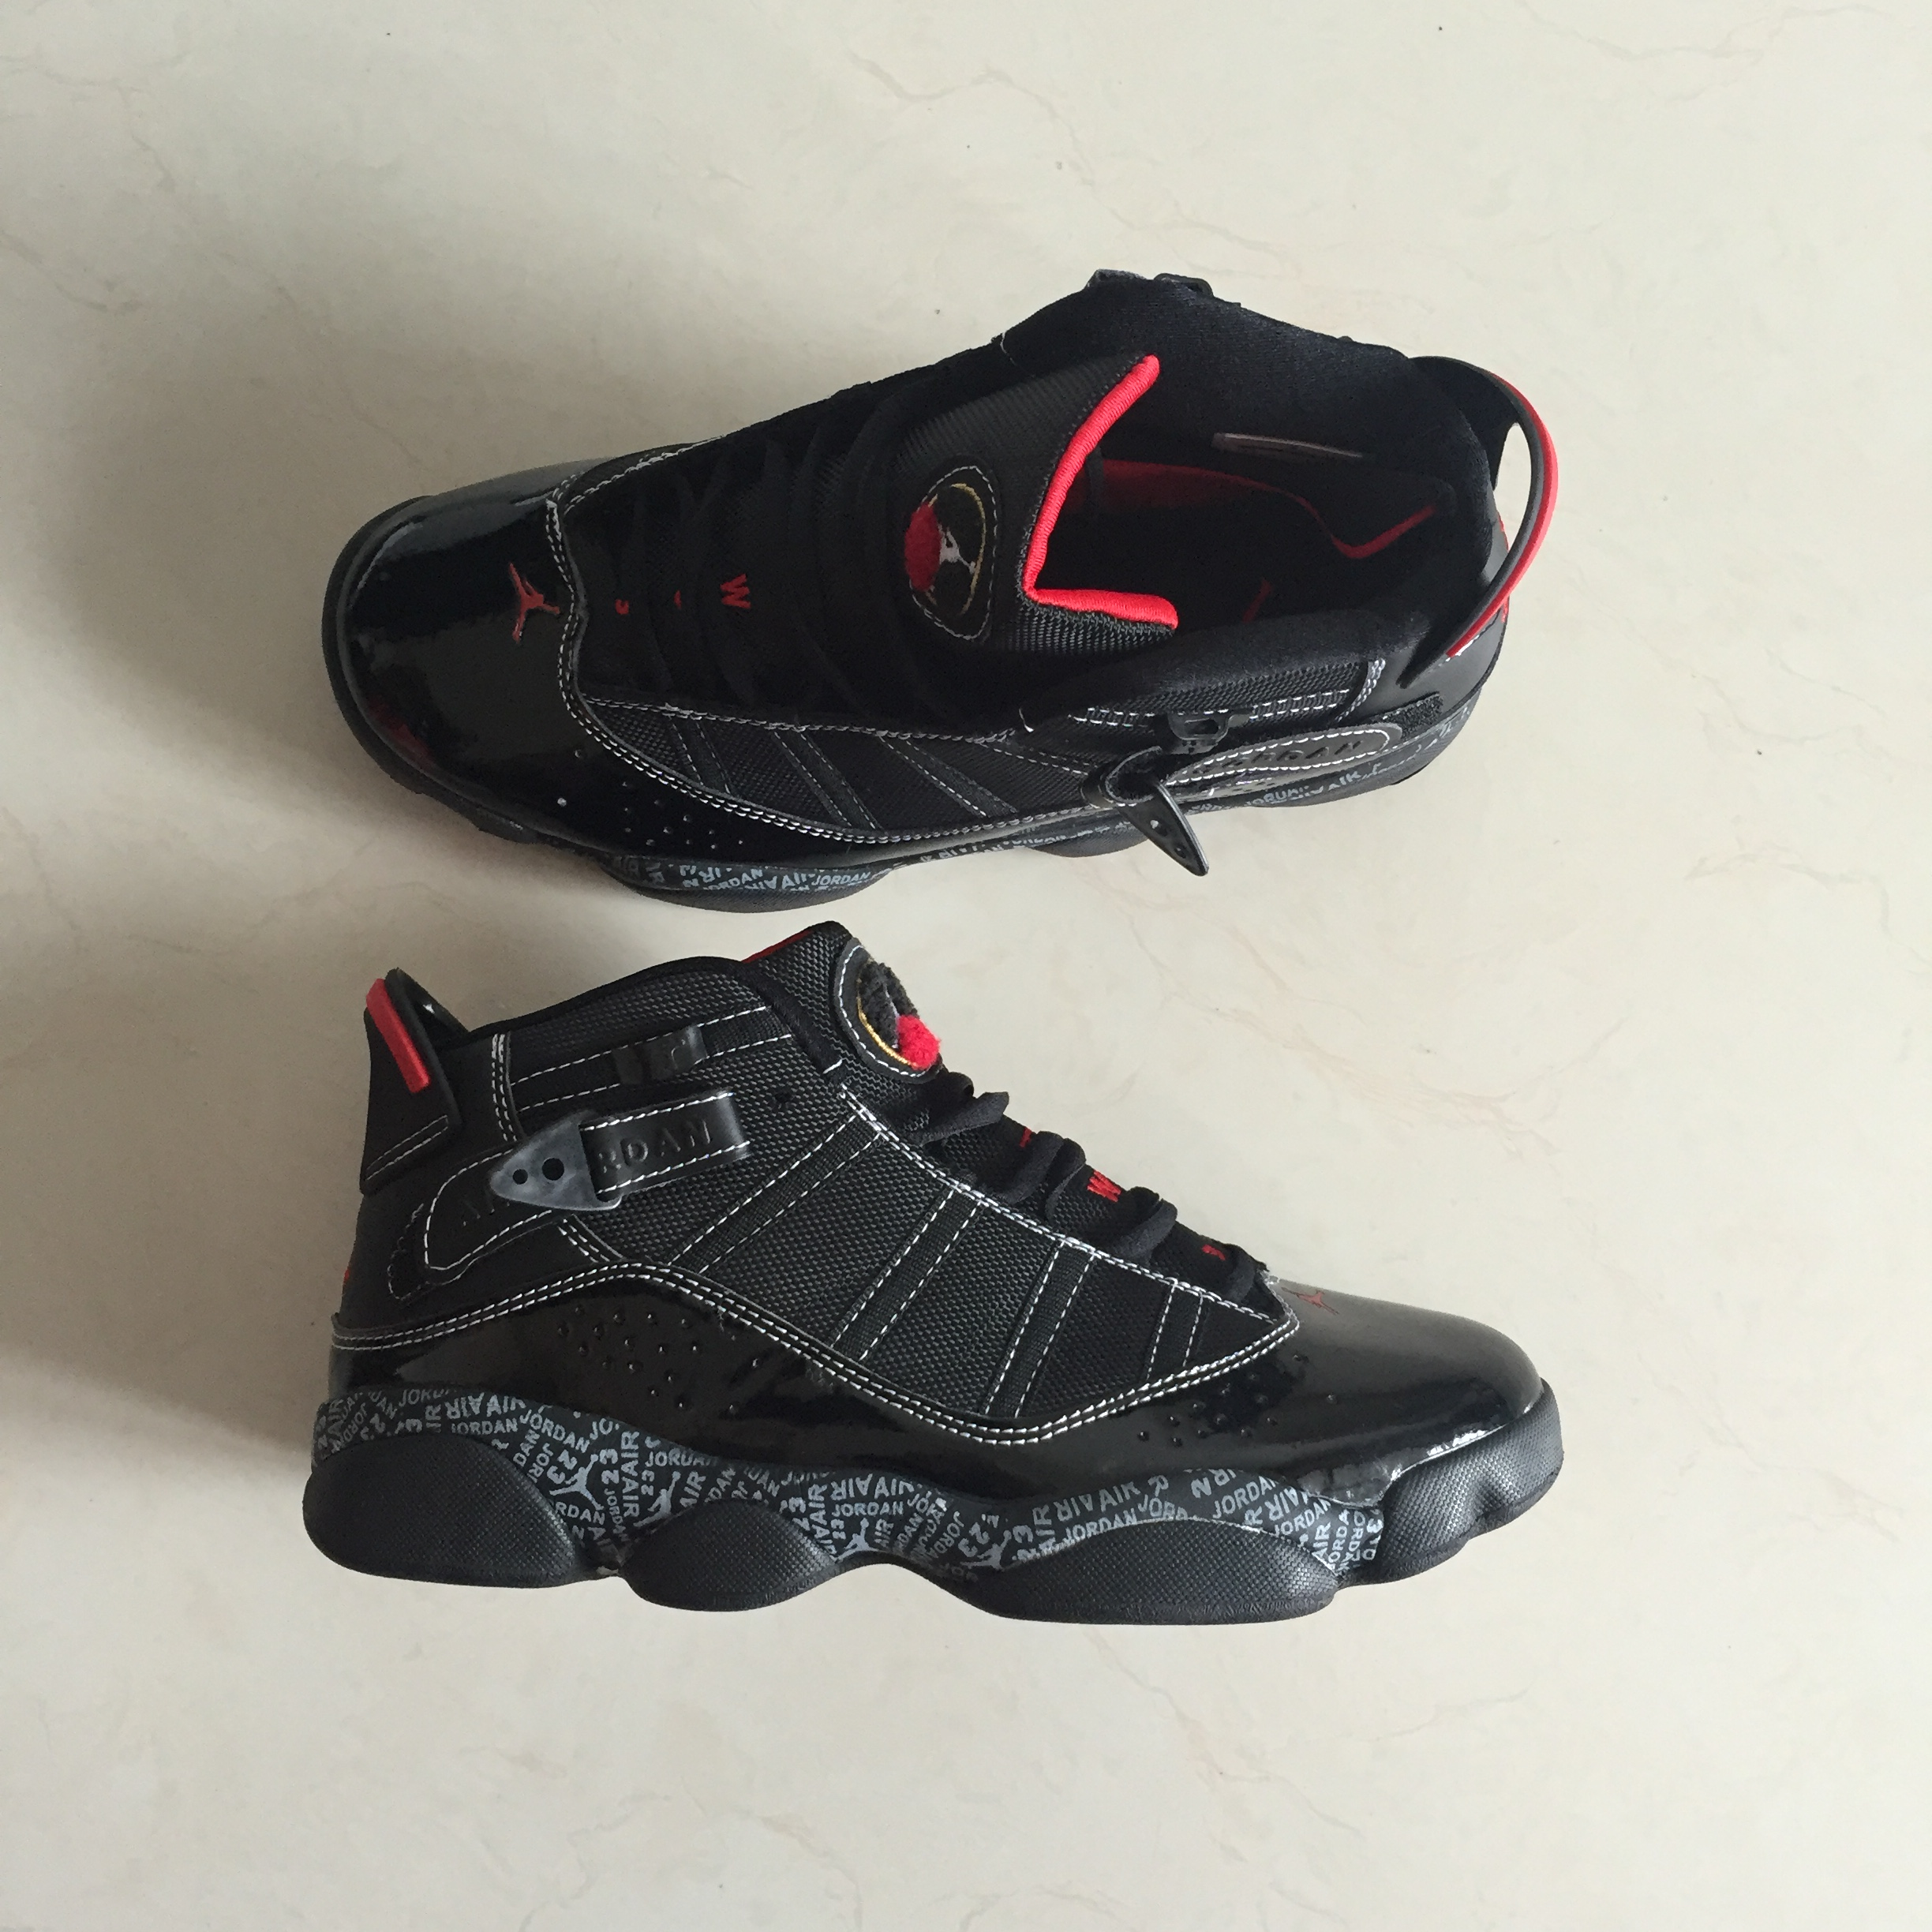 separation shoes b32f2 12ca5 Men Basketball Shoes Retro 6 Shoes Six Rings from YogaCloth